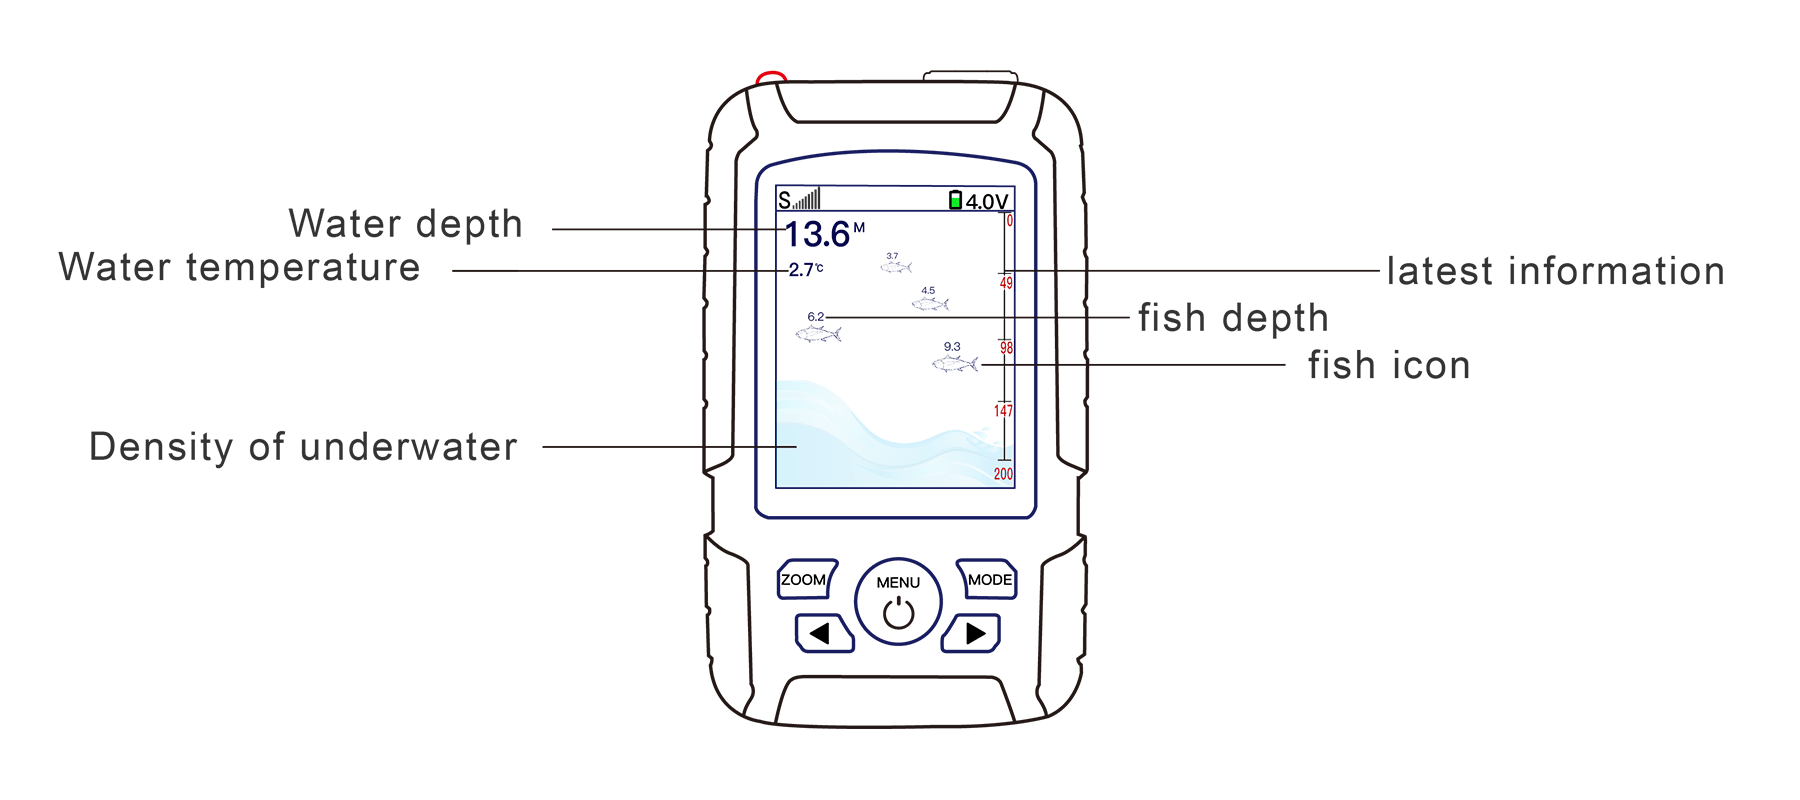 what can we read from the fish finder display screen